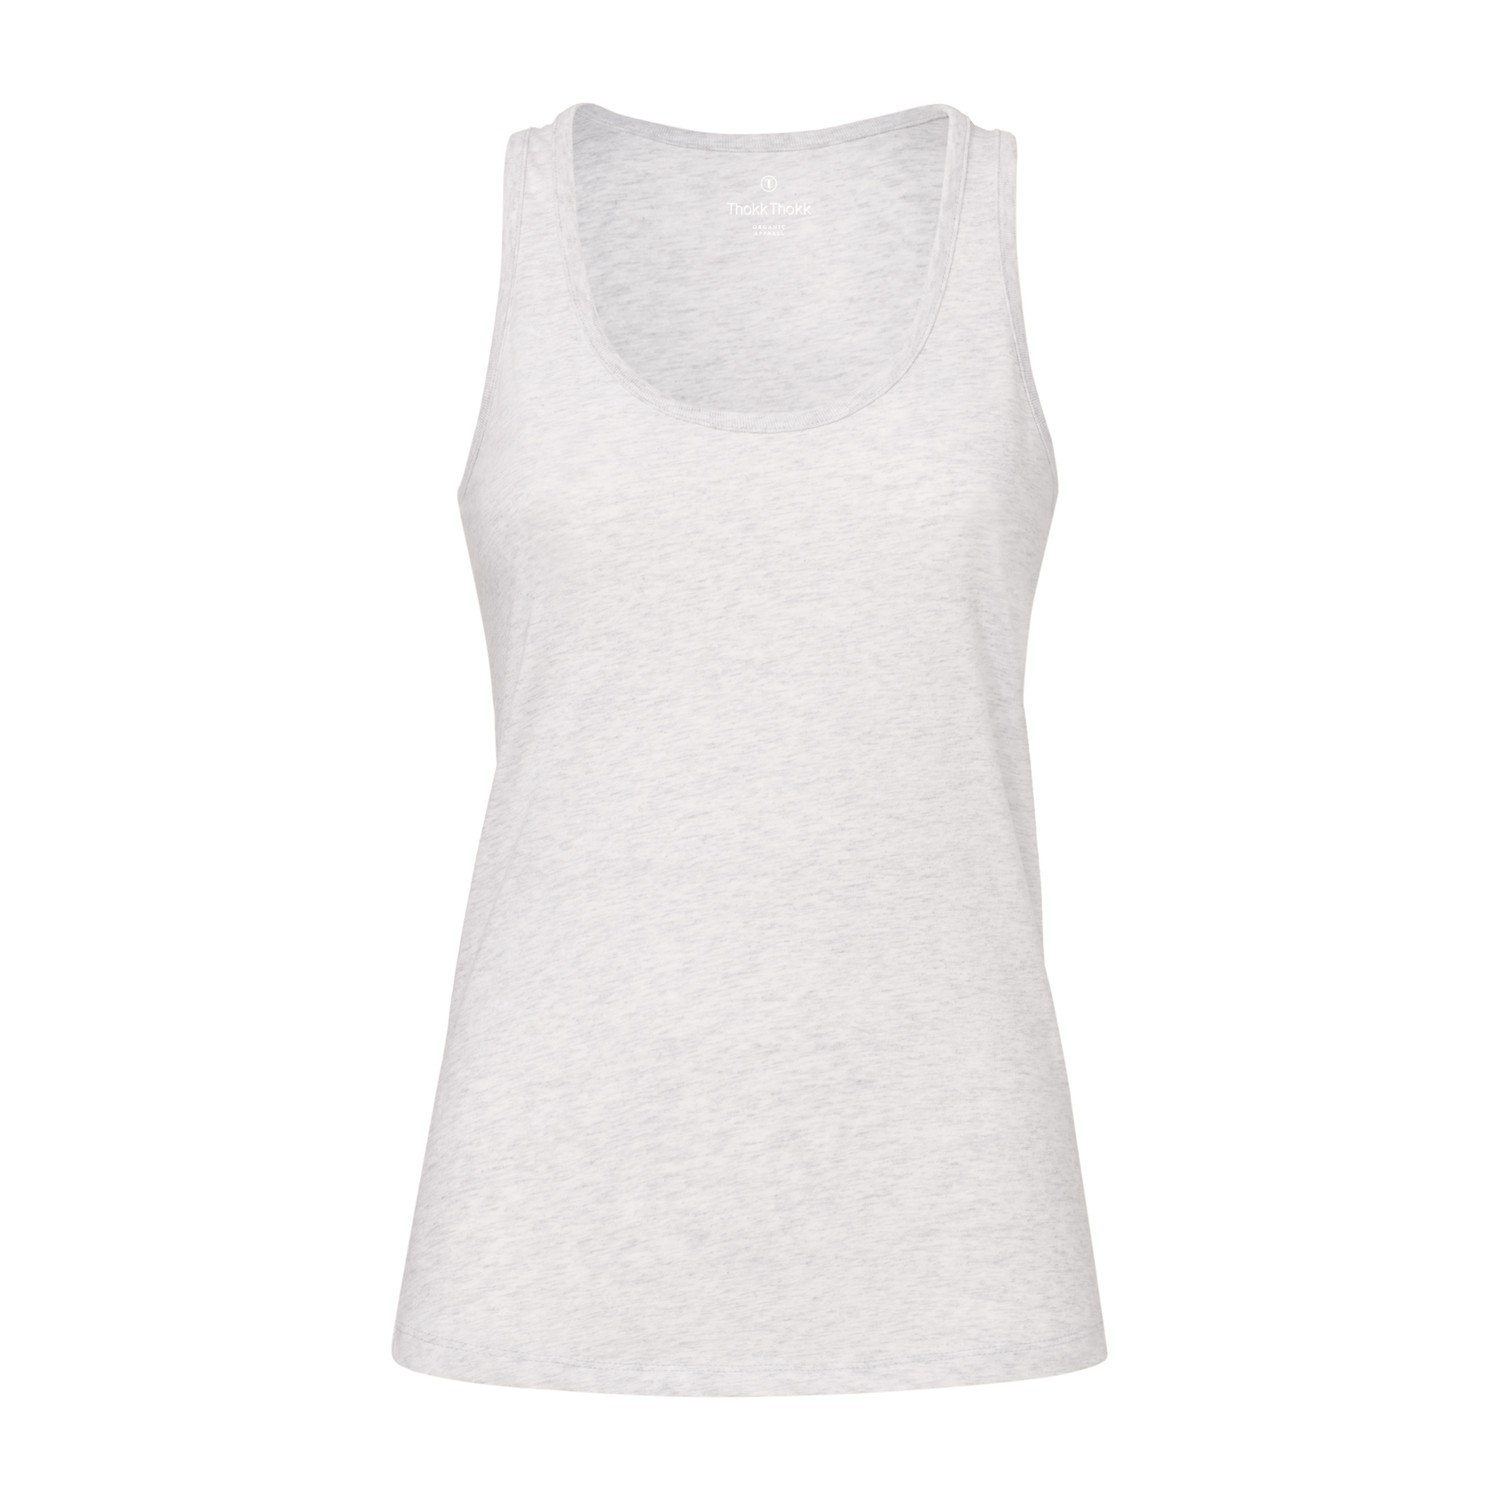 ThokkThokk Damen Tank Top Heather Ash Bio & Fair